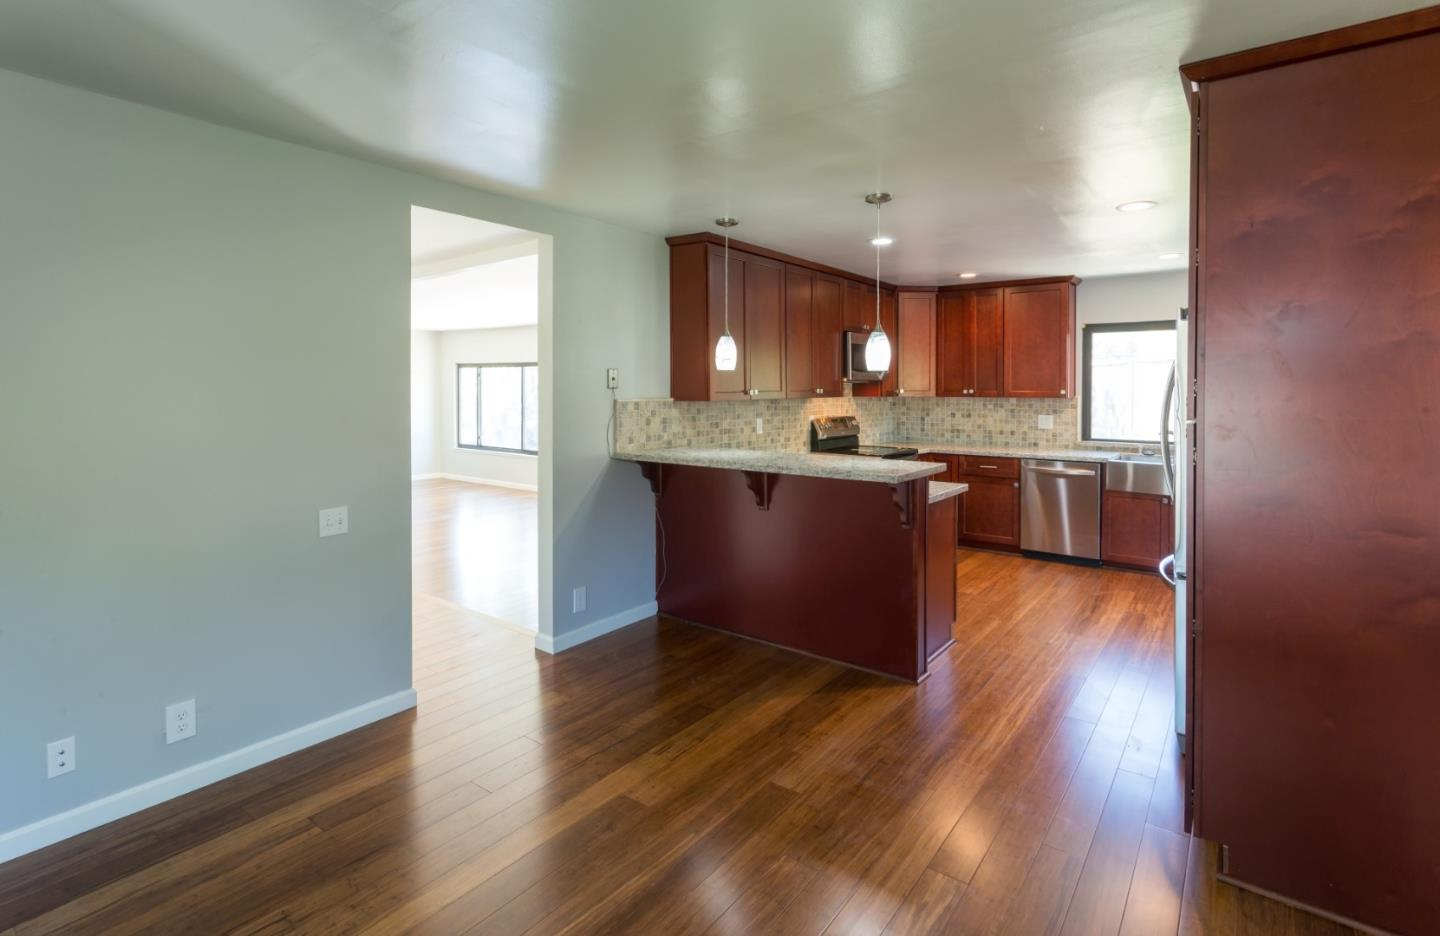 Additional photo for property listing at 5138 Severance Drive  San Jose, カリフォルニア 95136 アメリカ合衆国